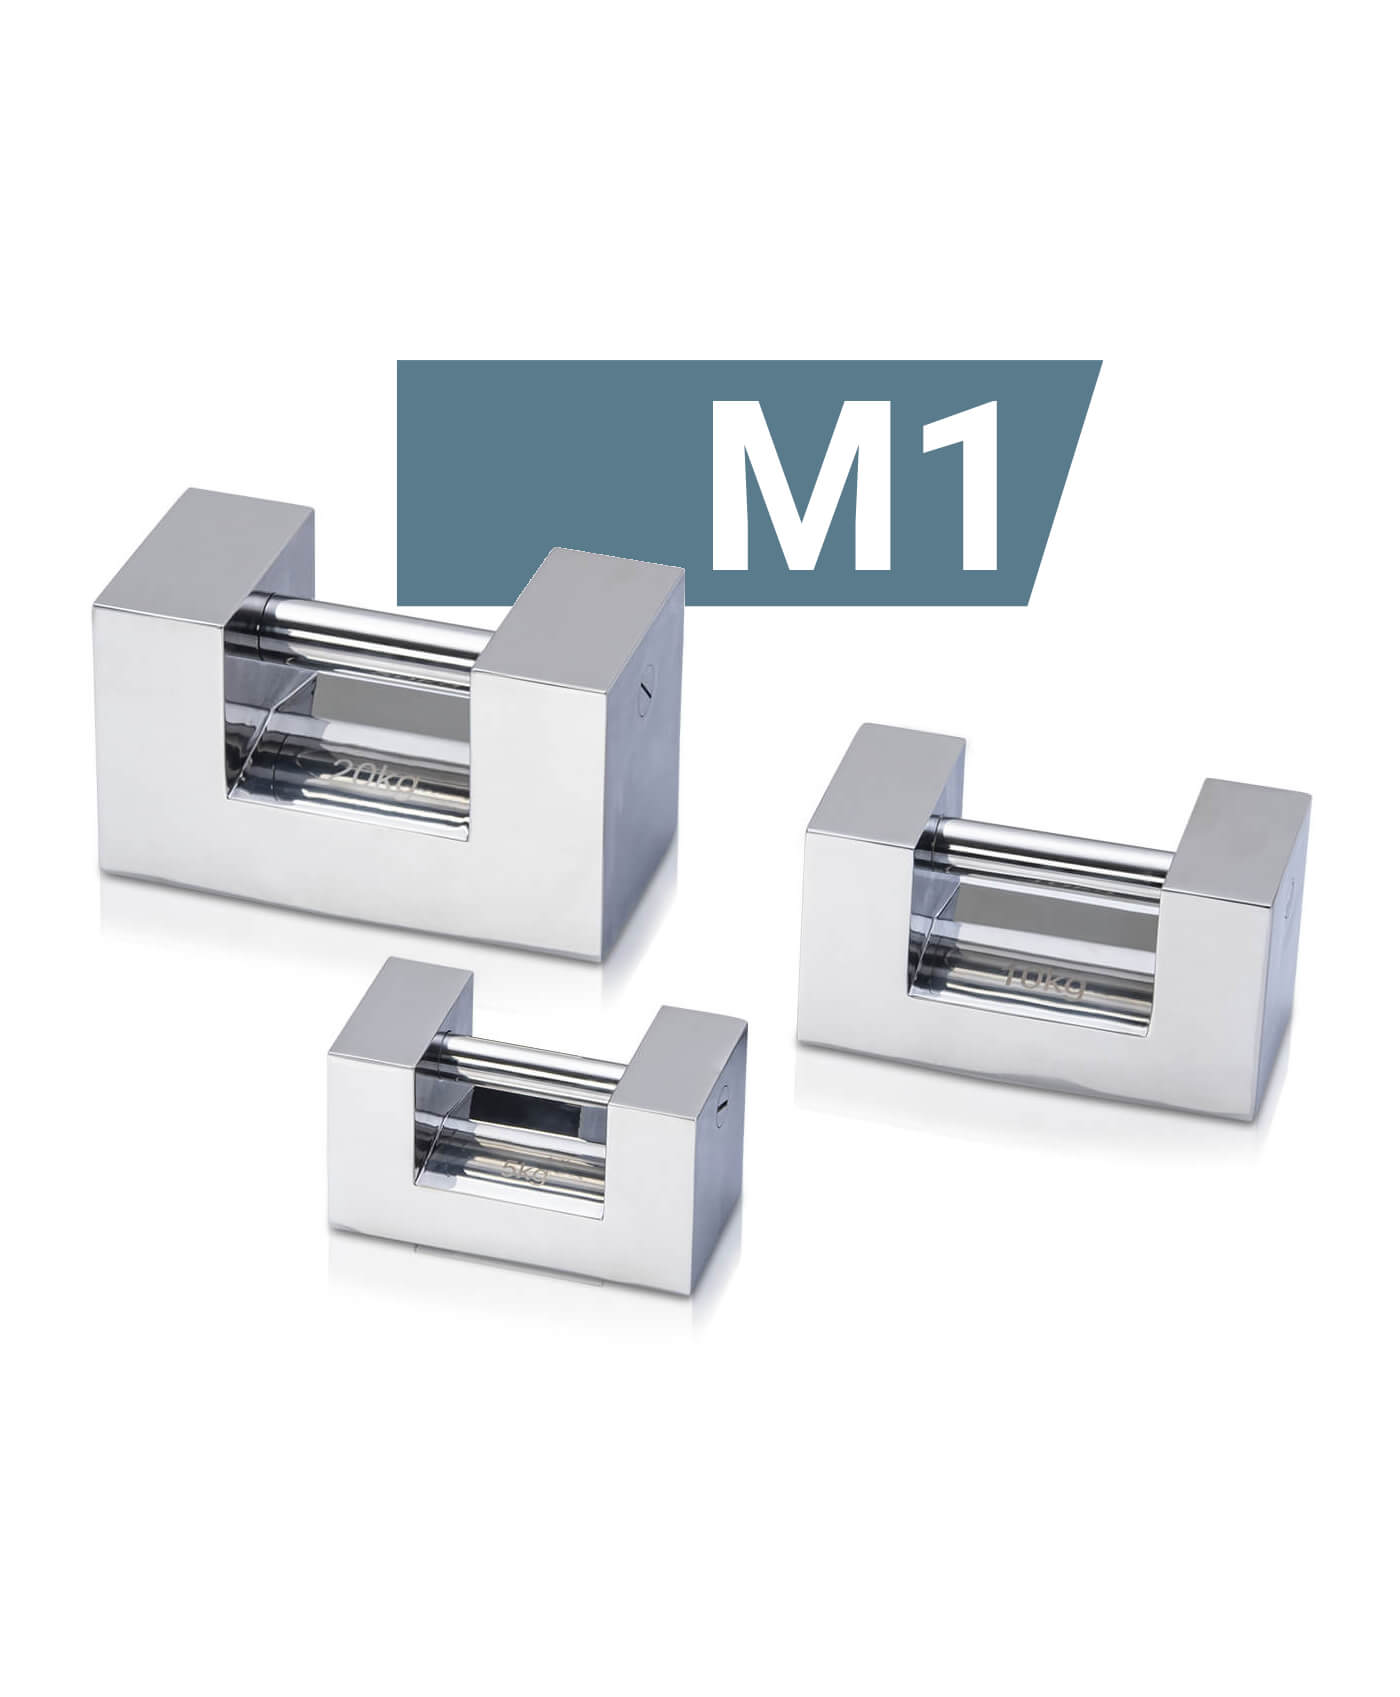 M1 stainless steel block weights